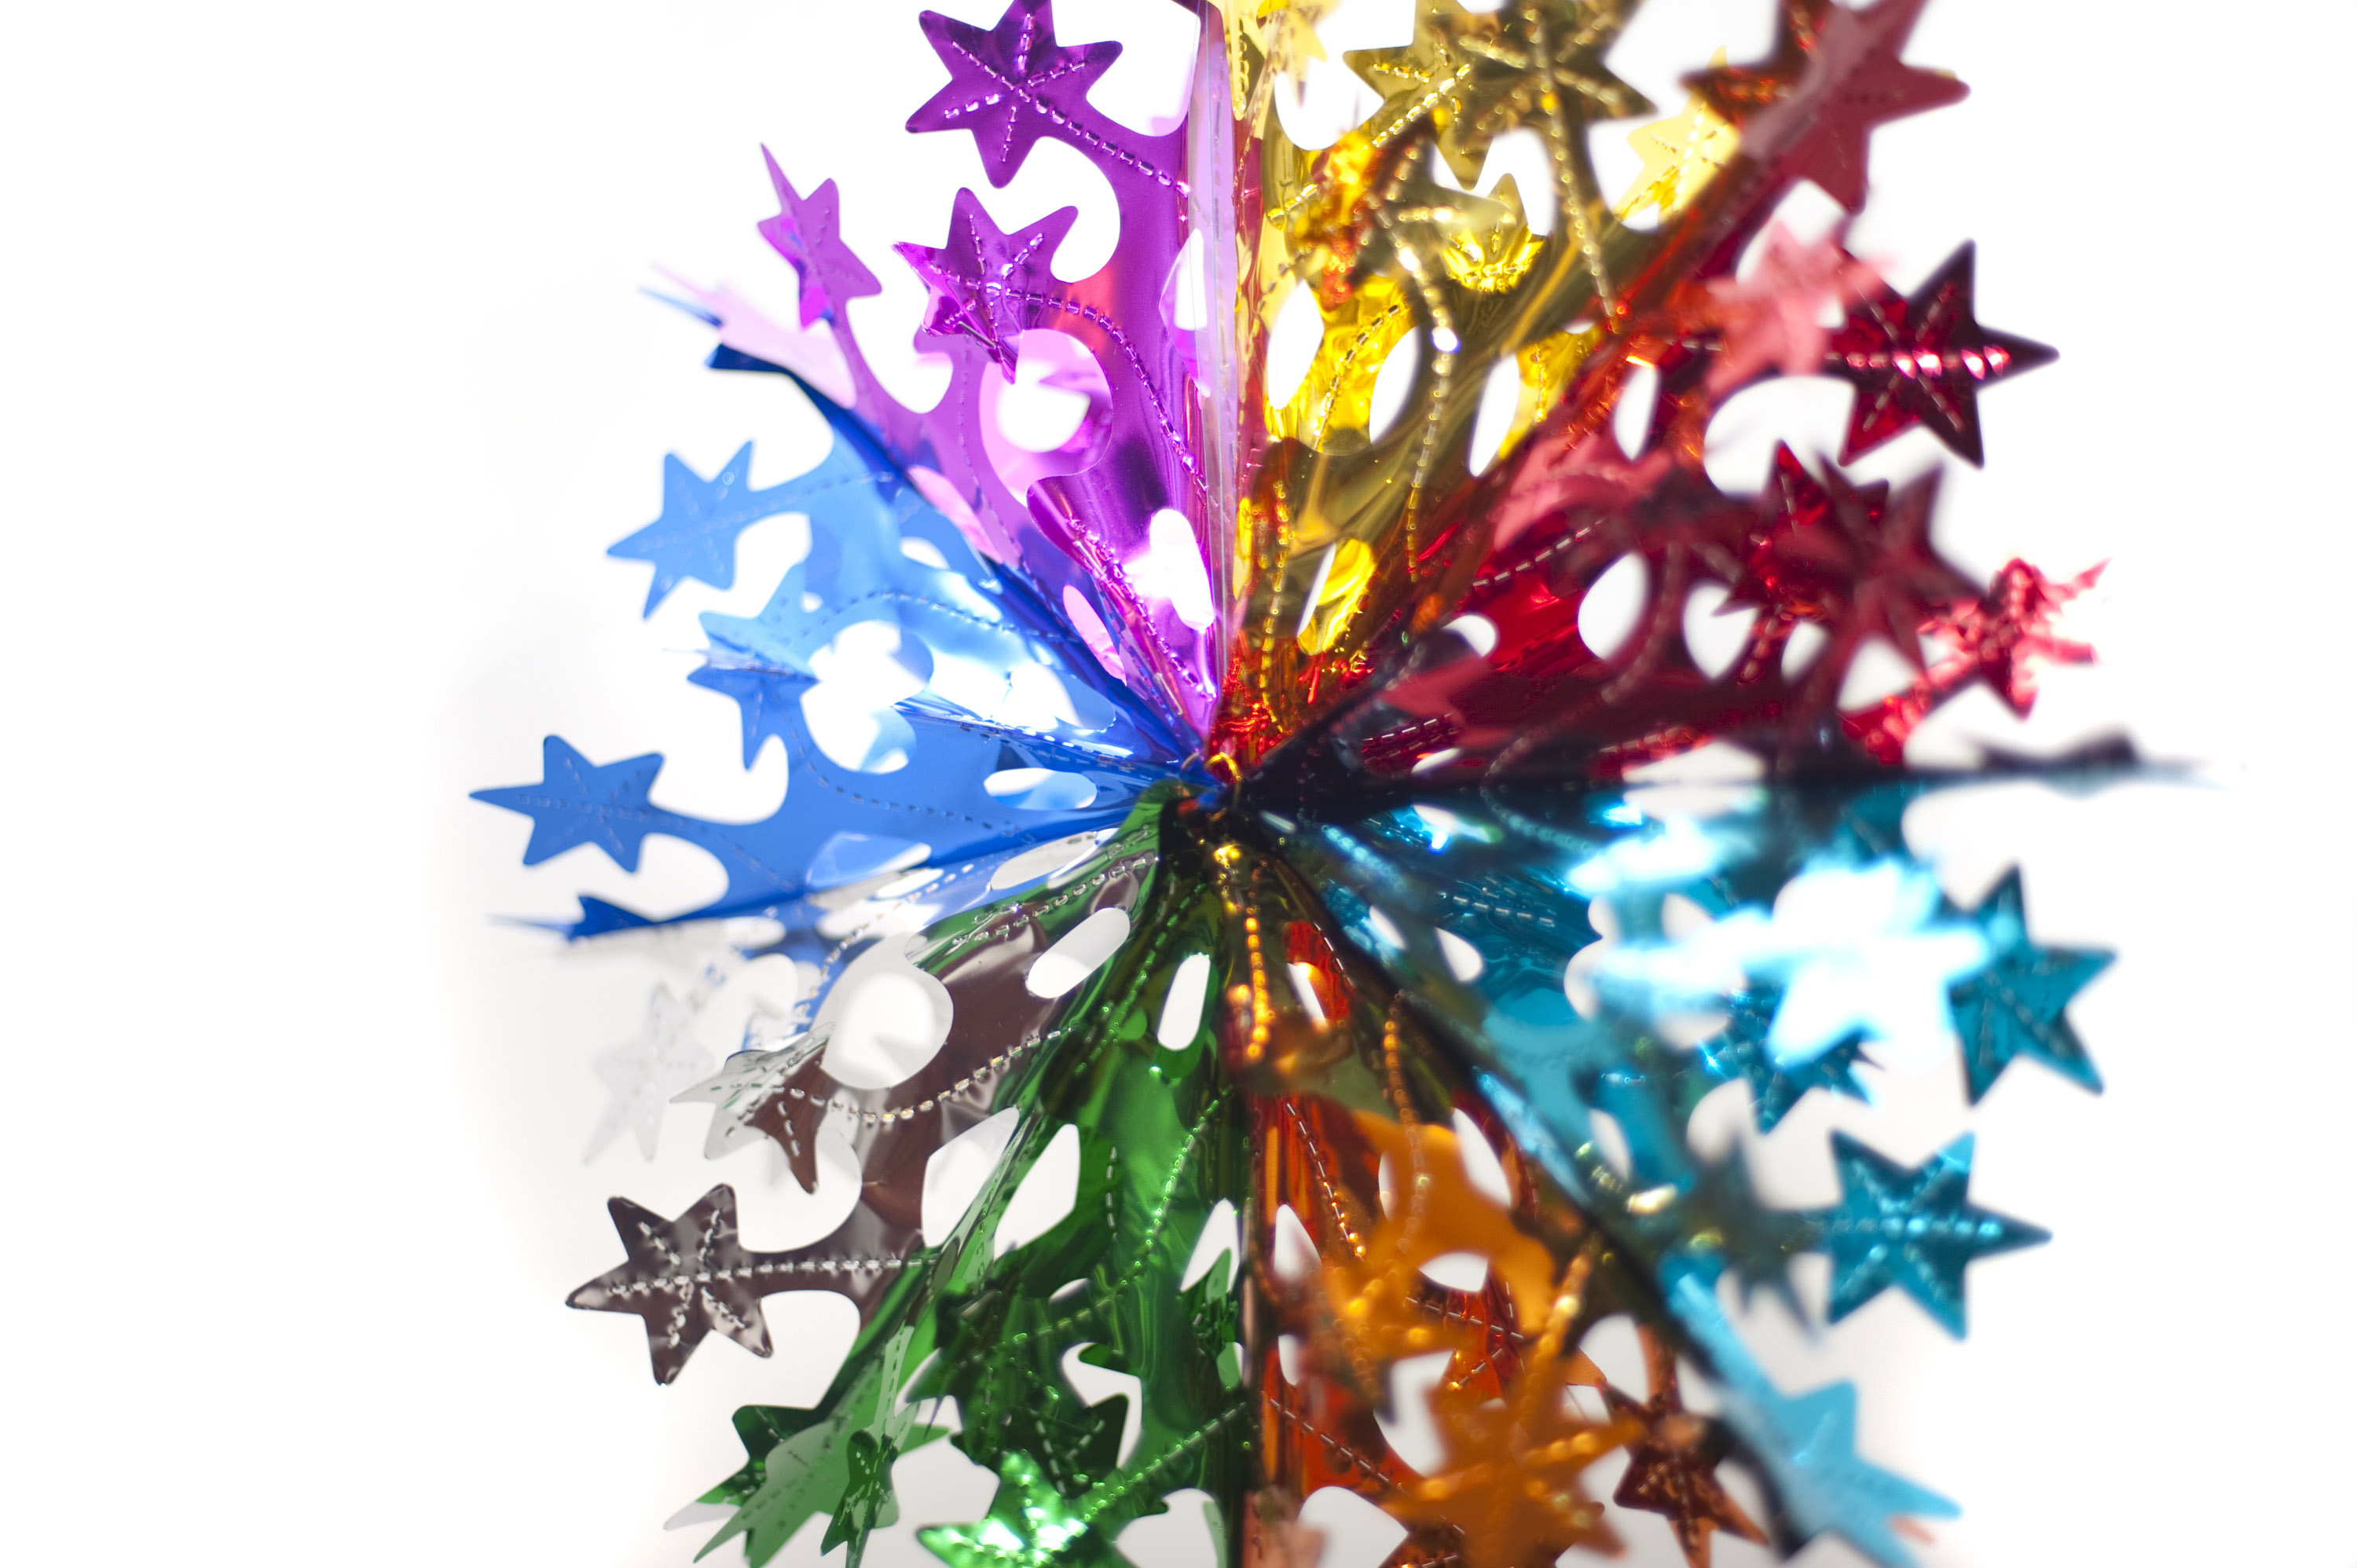 Colorful Christmas.Free Stock Photo 4696 Colourful Christmas Star Freeimageslive